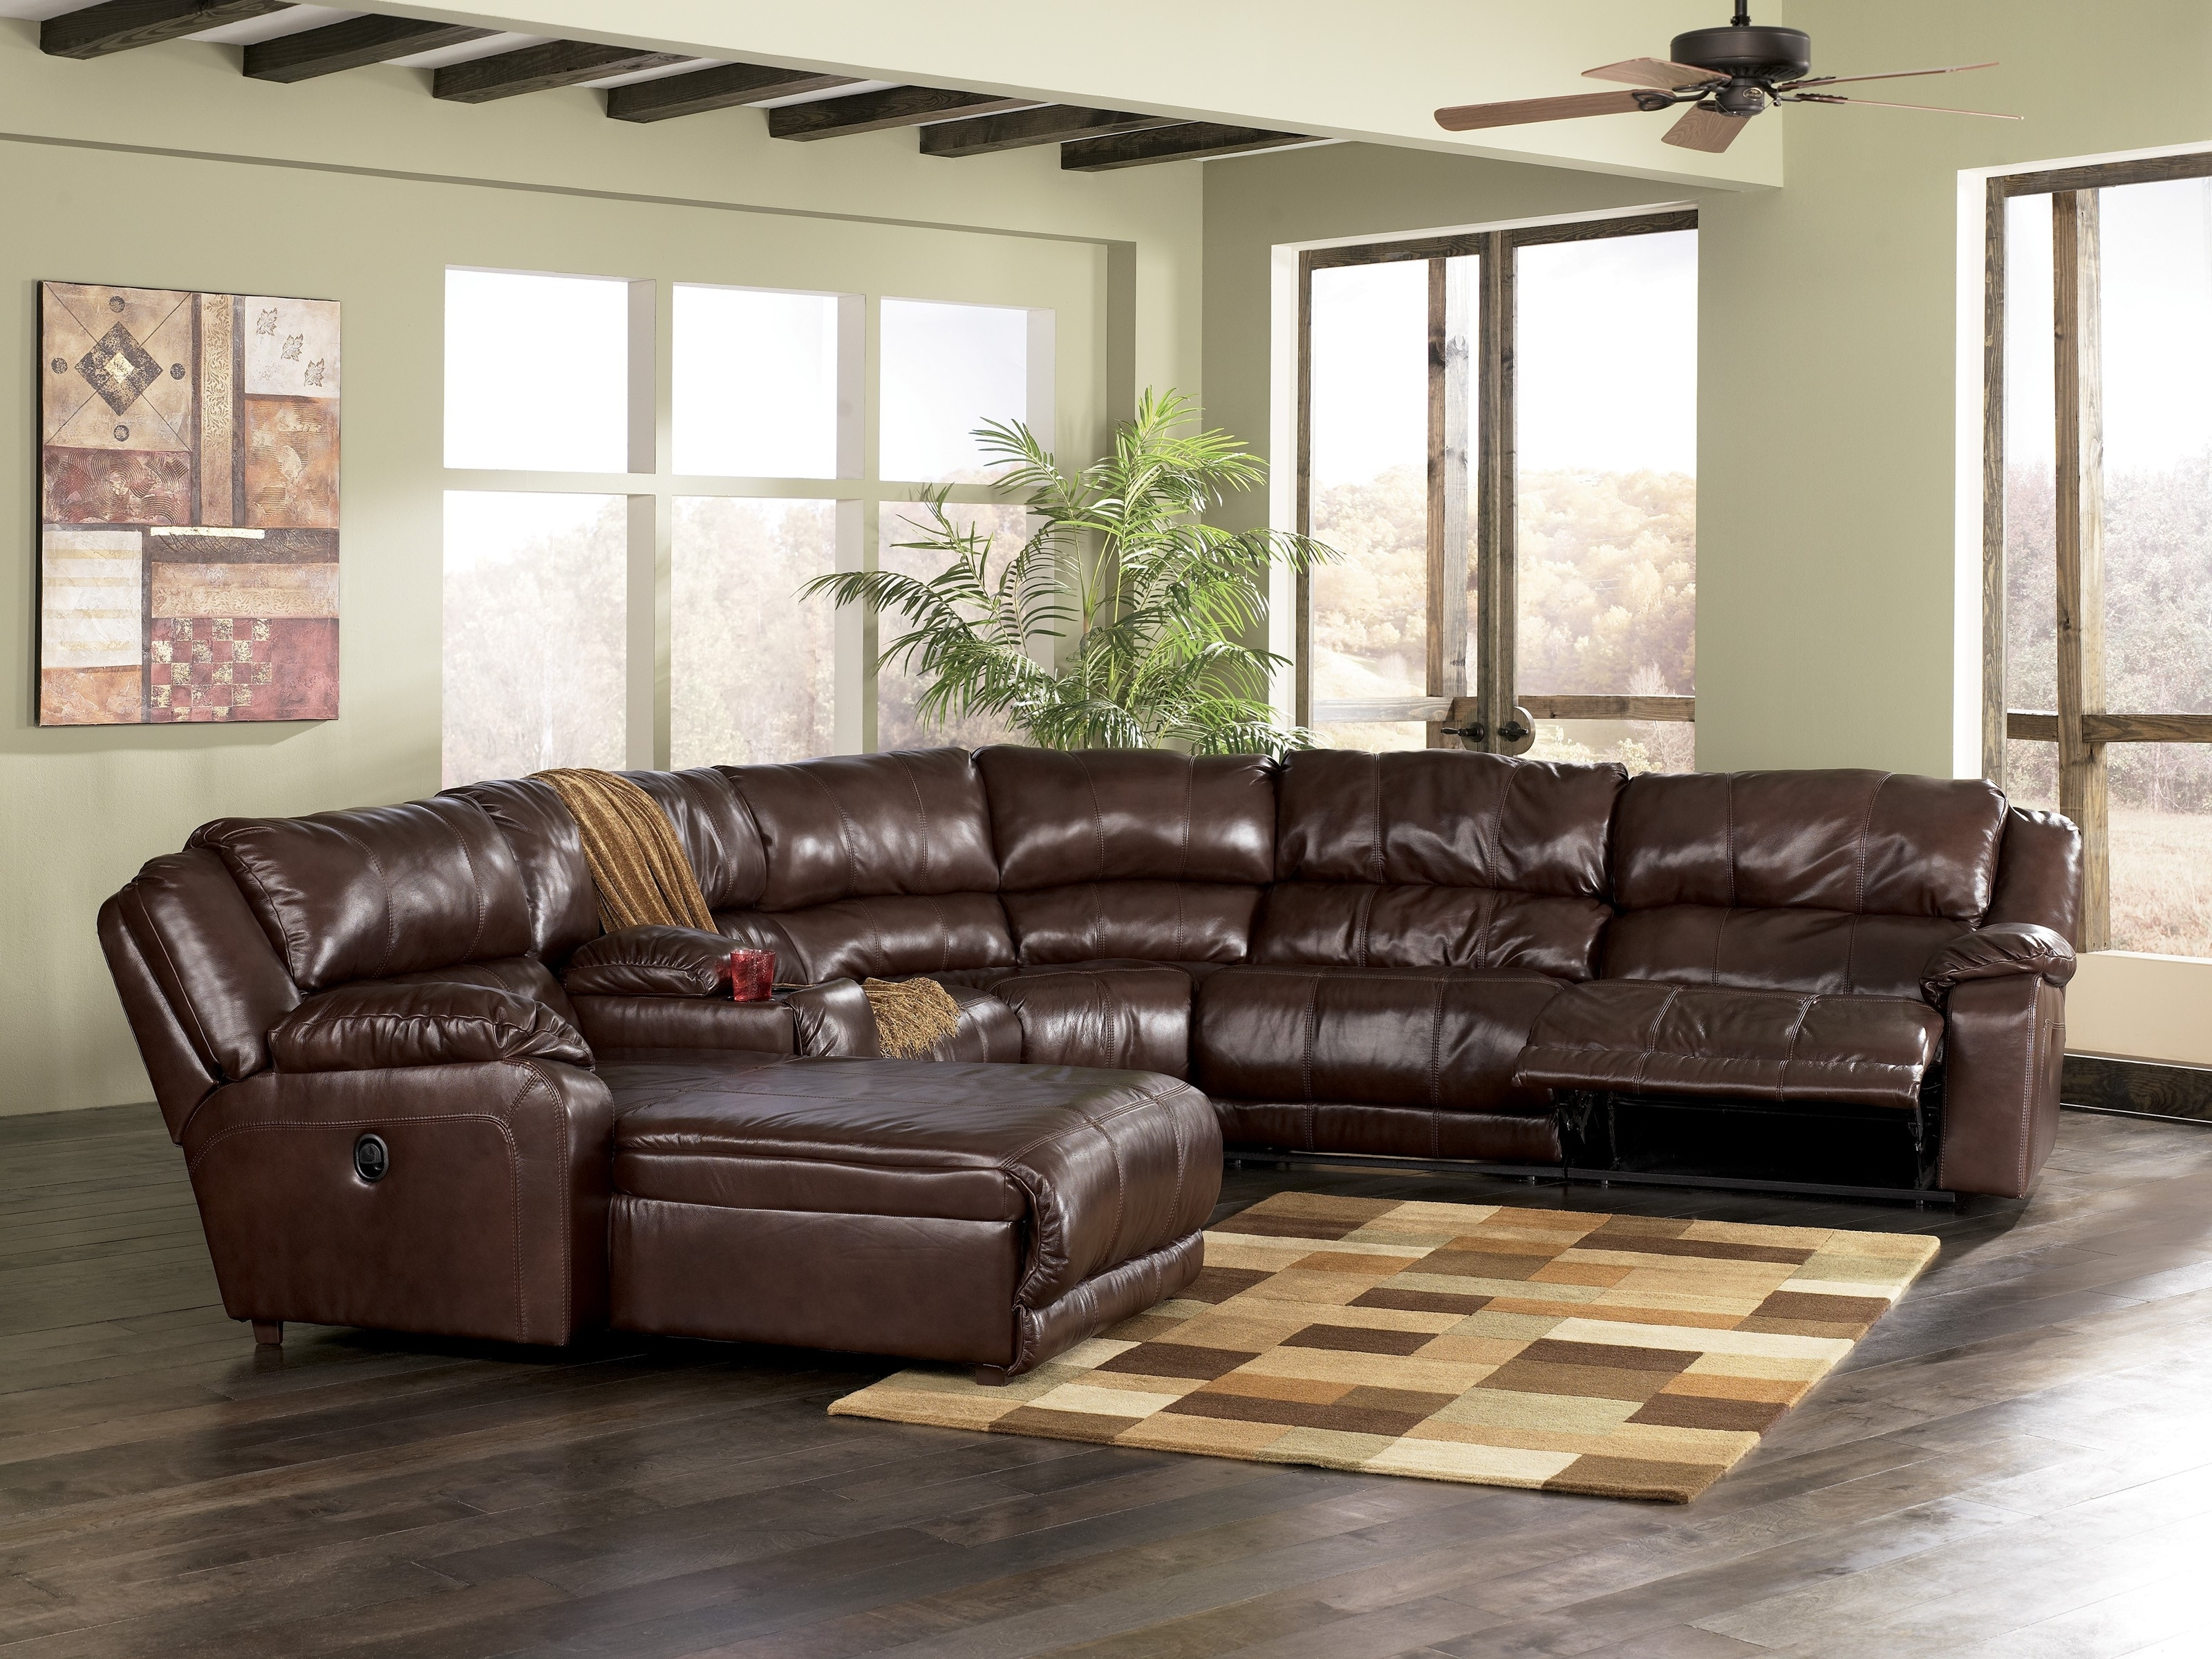 Most Recent Trend L Shaped Sectional Sofa With Recliner 97 In Large Leather Within Leather L Shaped Sectional Sofas (View 5 of 15)